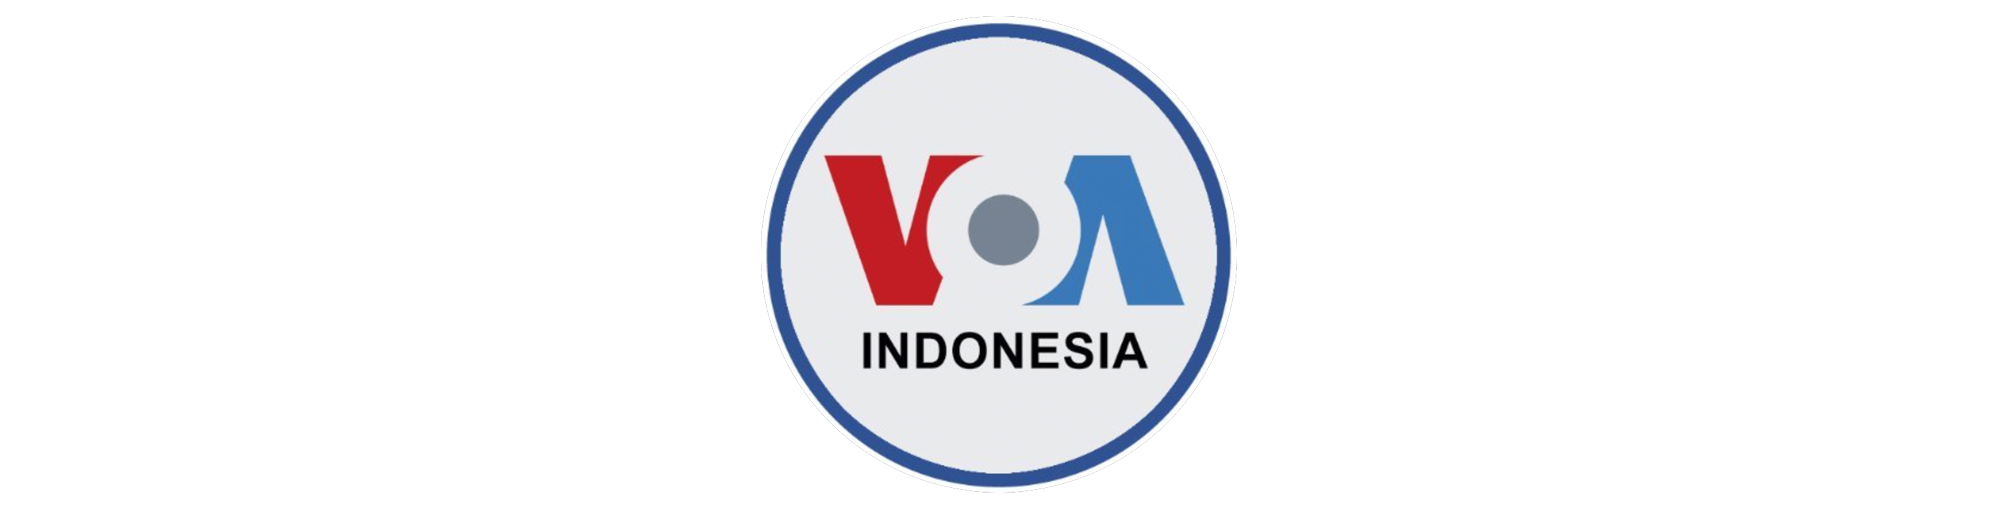 Rebricks was featured onRebricks on VOA Indonesia